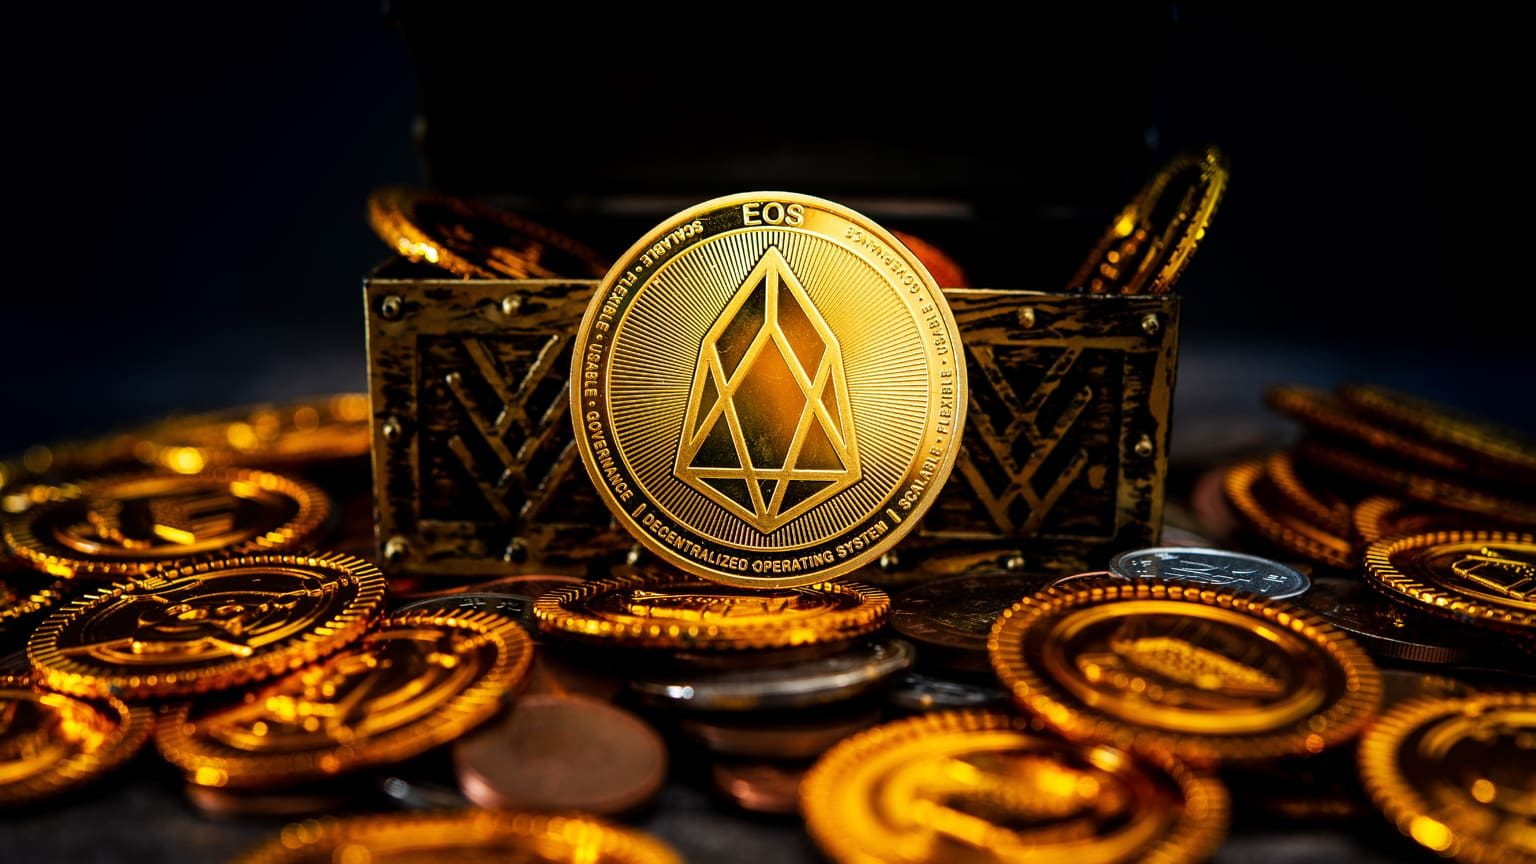 EOS cryptocurrency in a treasure box